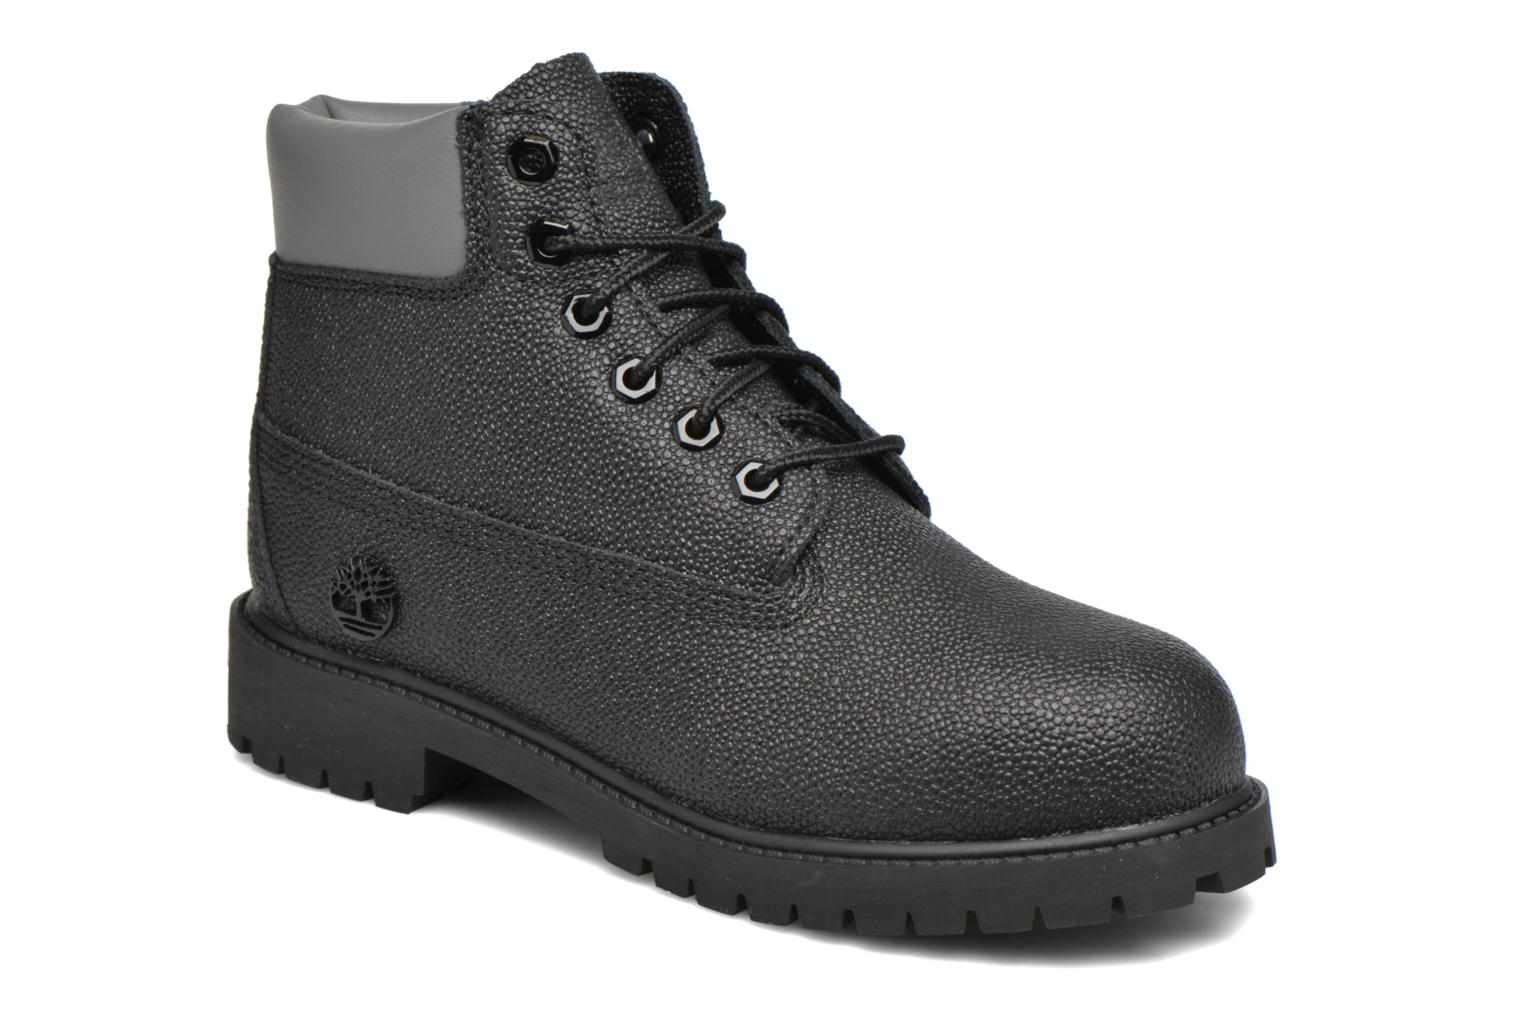 6 In Premium WP Boot Black II